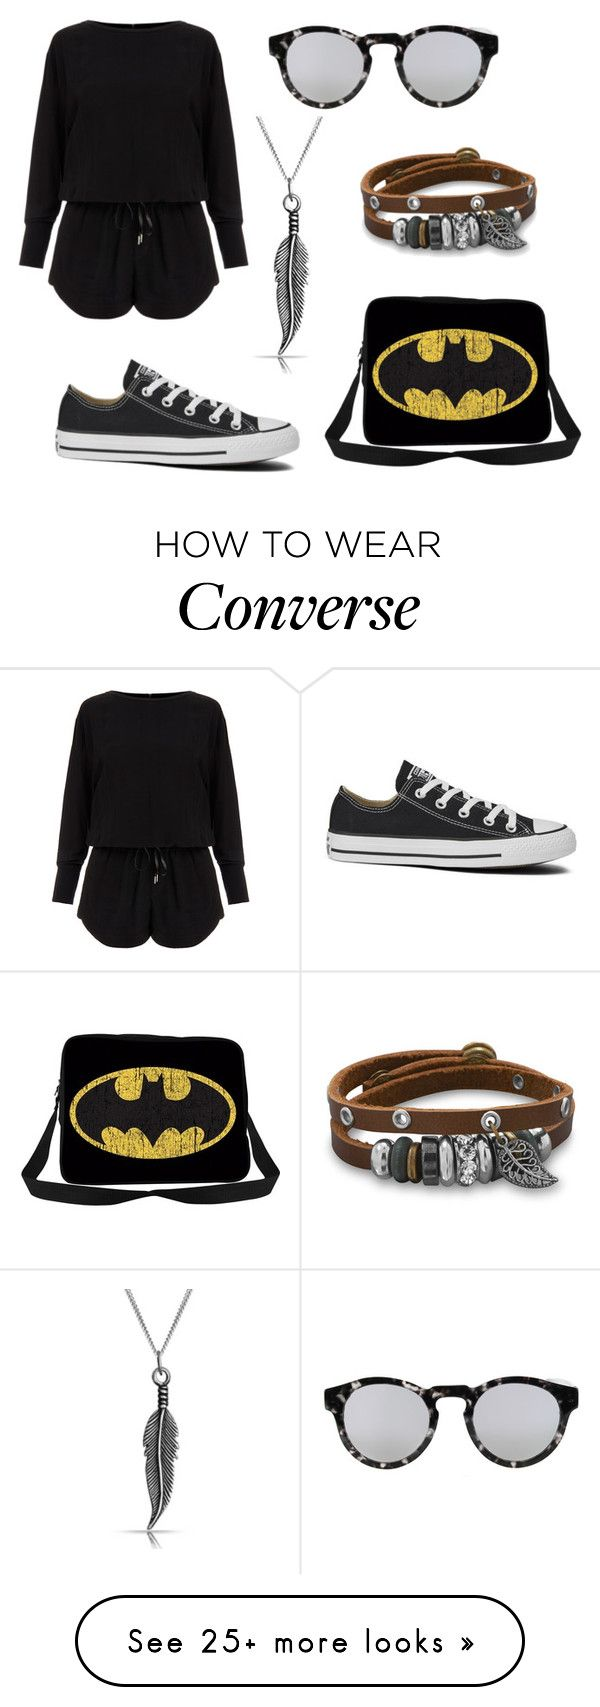 """Geen titel #71"" by silked on Polyvore featuring Helmut Lang, Converse, Illesteva, Bling Jewelry and BillyTheTree"